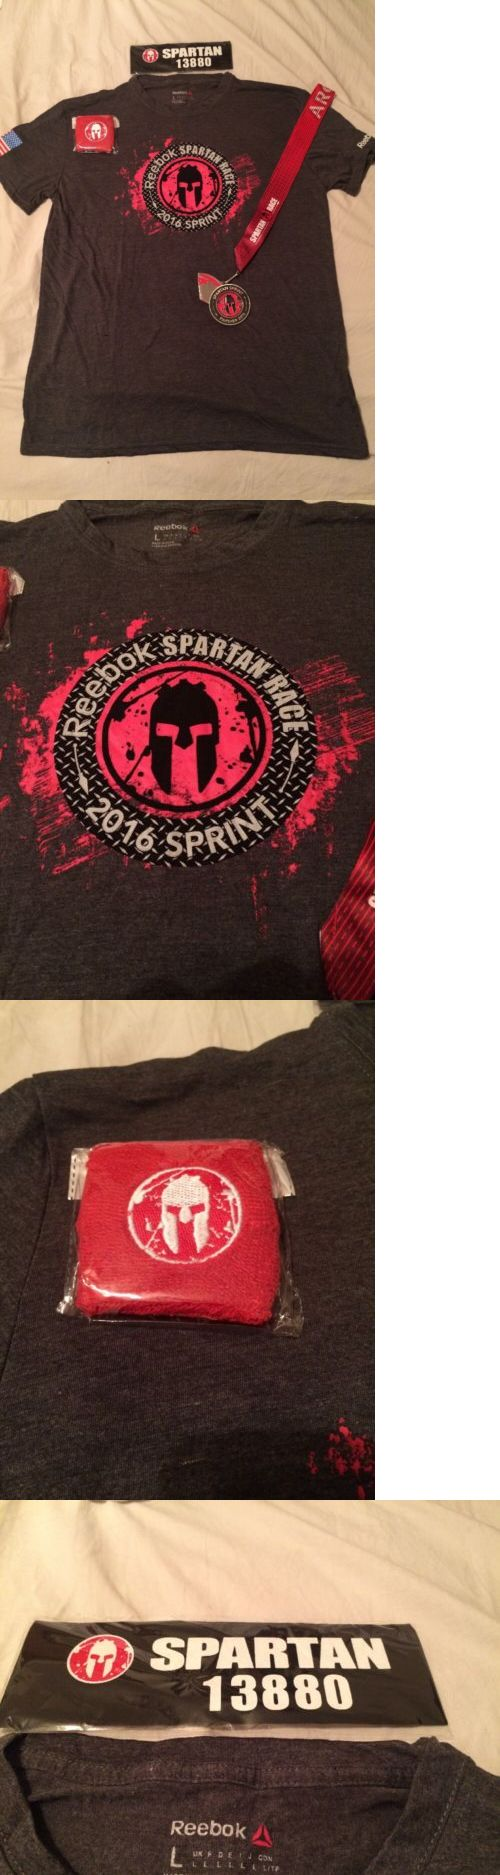 Other Fitness Clothing 158920: 2016 Spartan Race Finisher Collection: T-Shirt (L), Medal, Headband, Wristband -> BUY IT NOW ONLY: $49.99 on eBay!